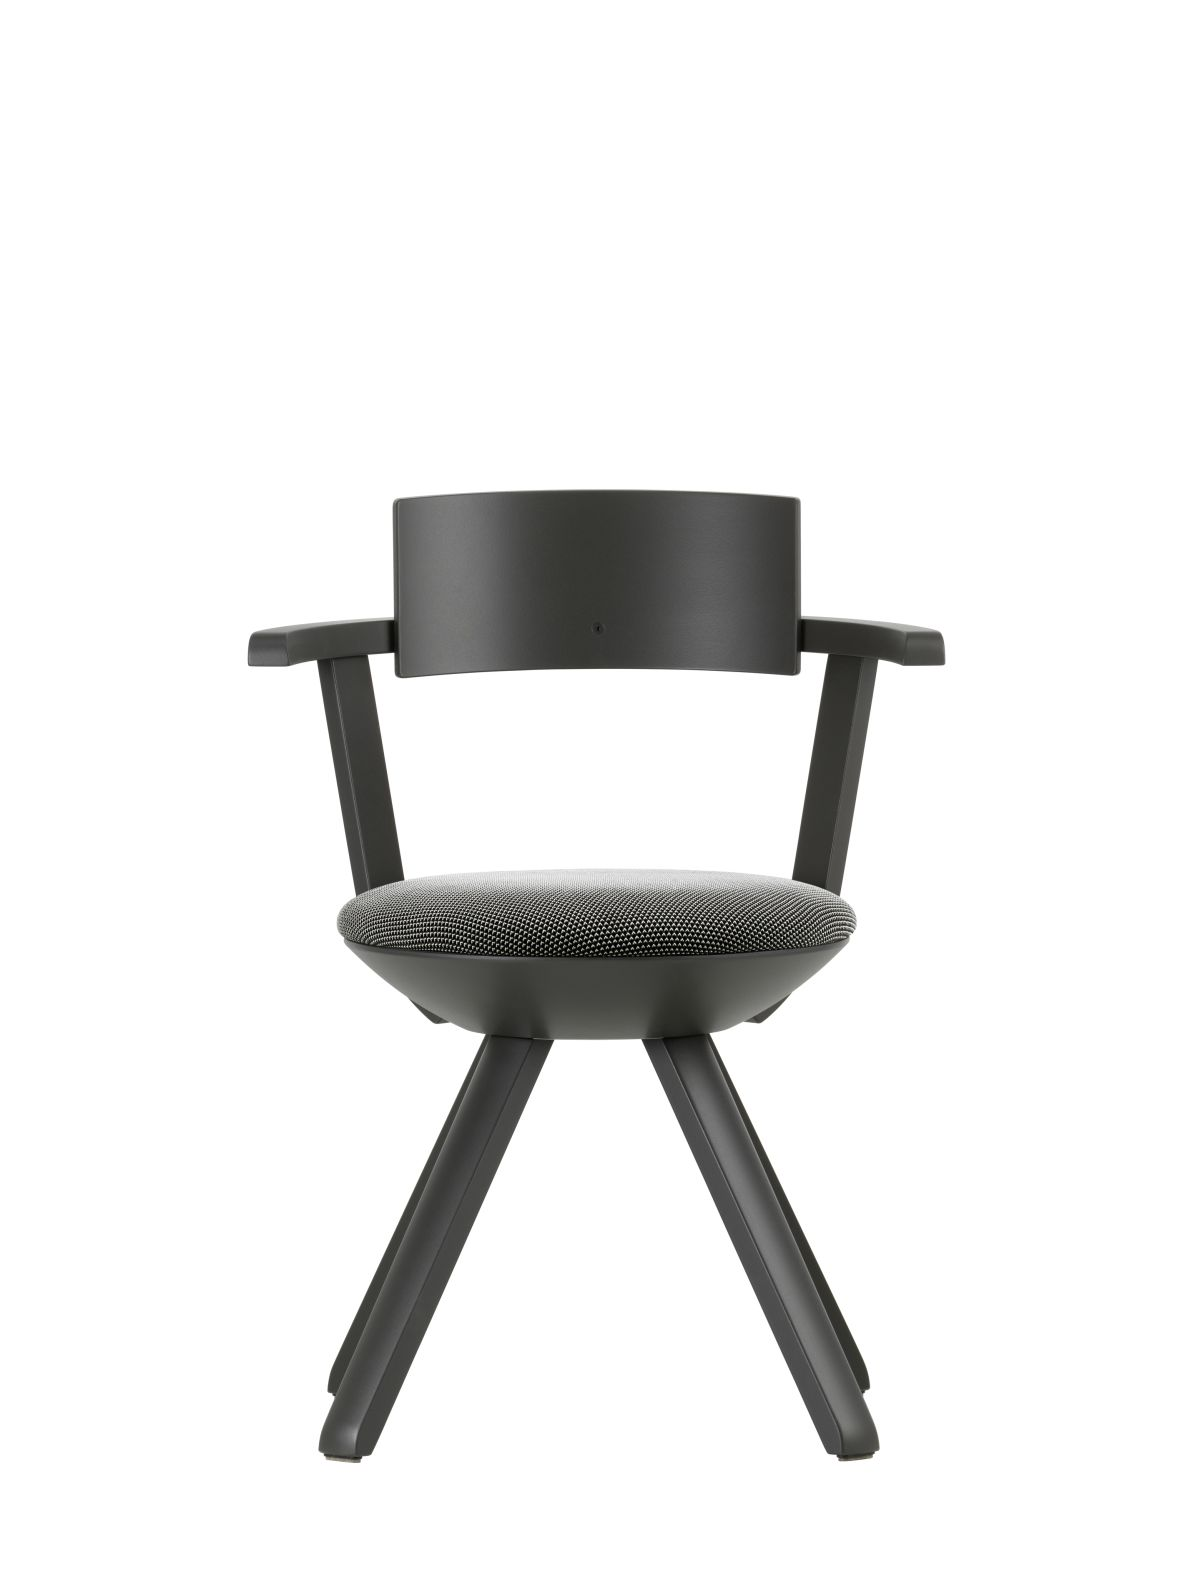 Rival Chair KG002 Legs and backrest asphalt lacquered seat upholstery 3D-knit black white